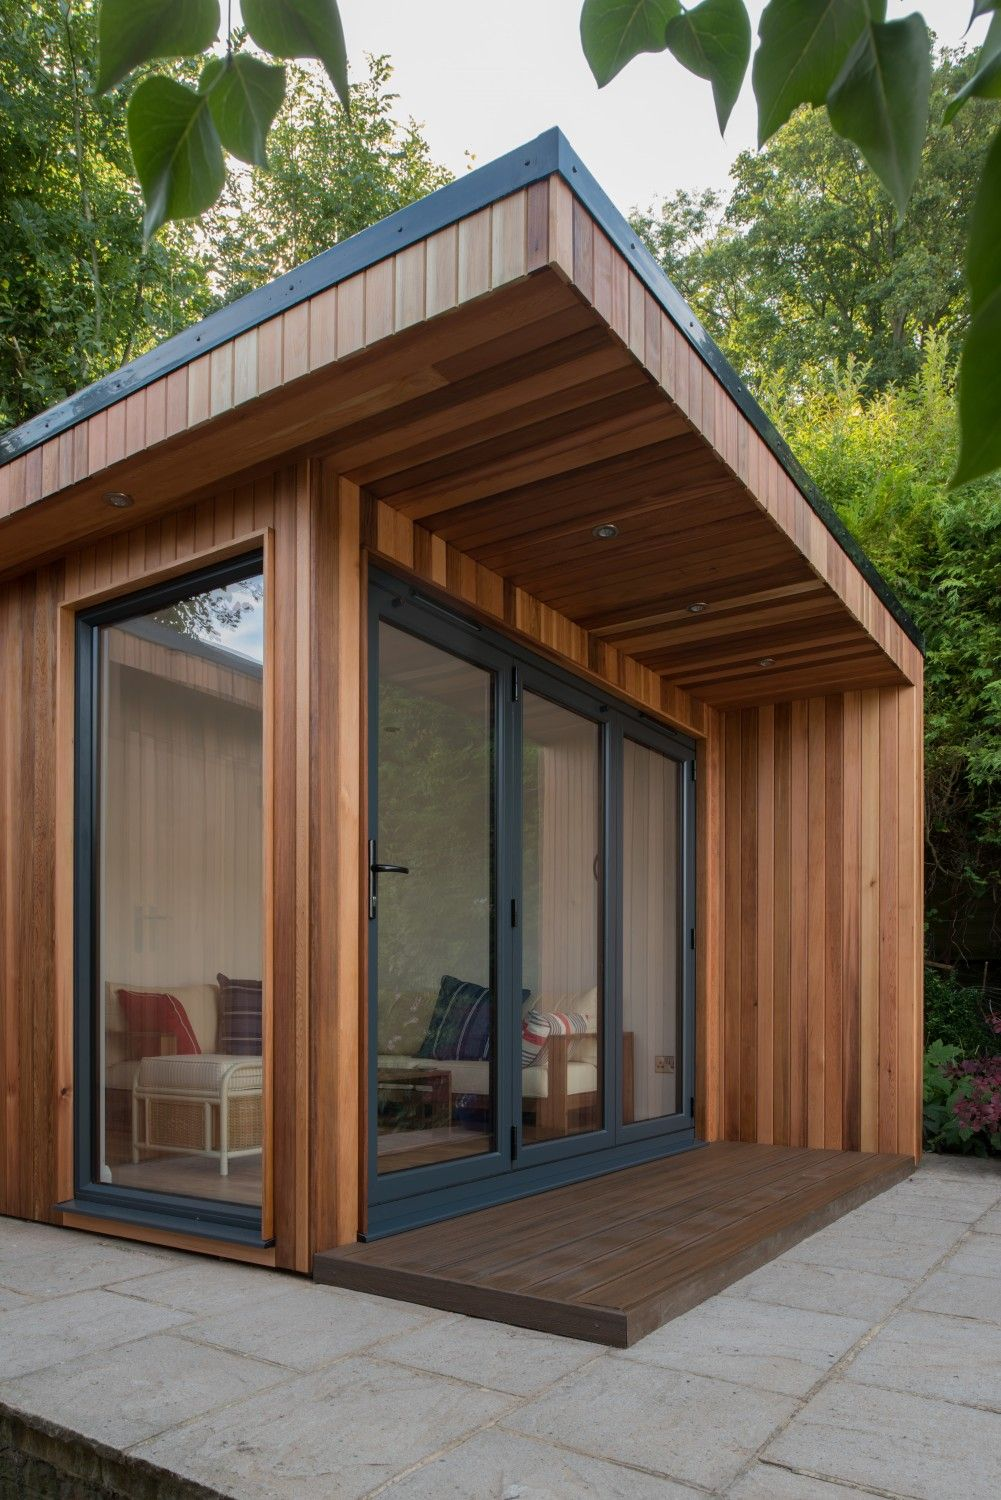 Garden Room with Store - Contemporary Garden Rooms by Harrison James ...